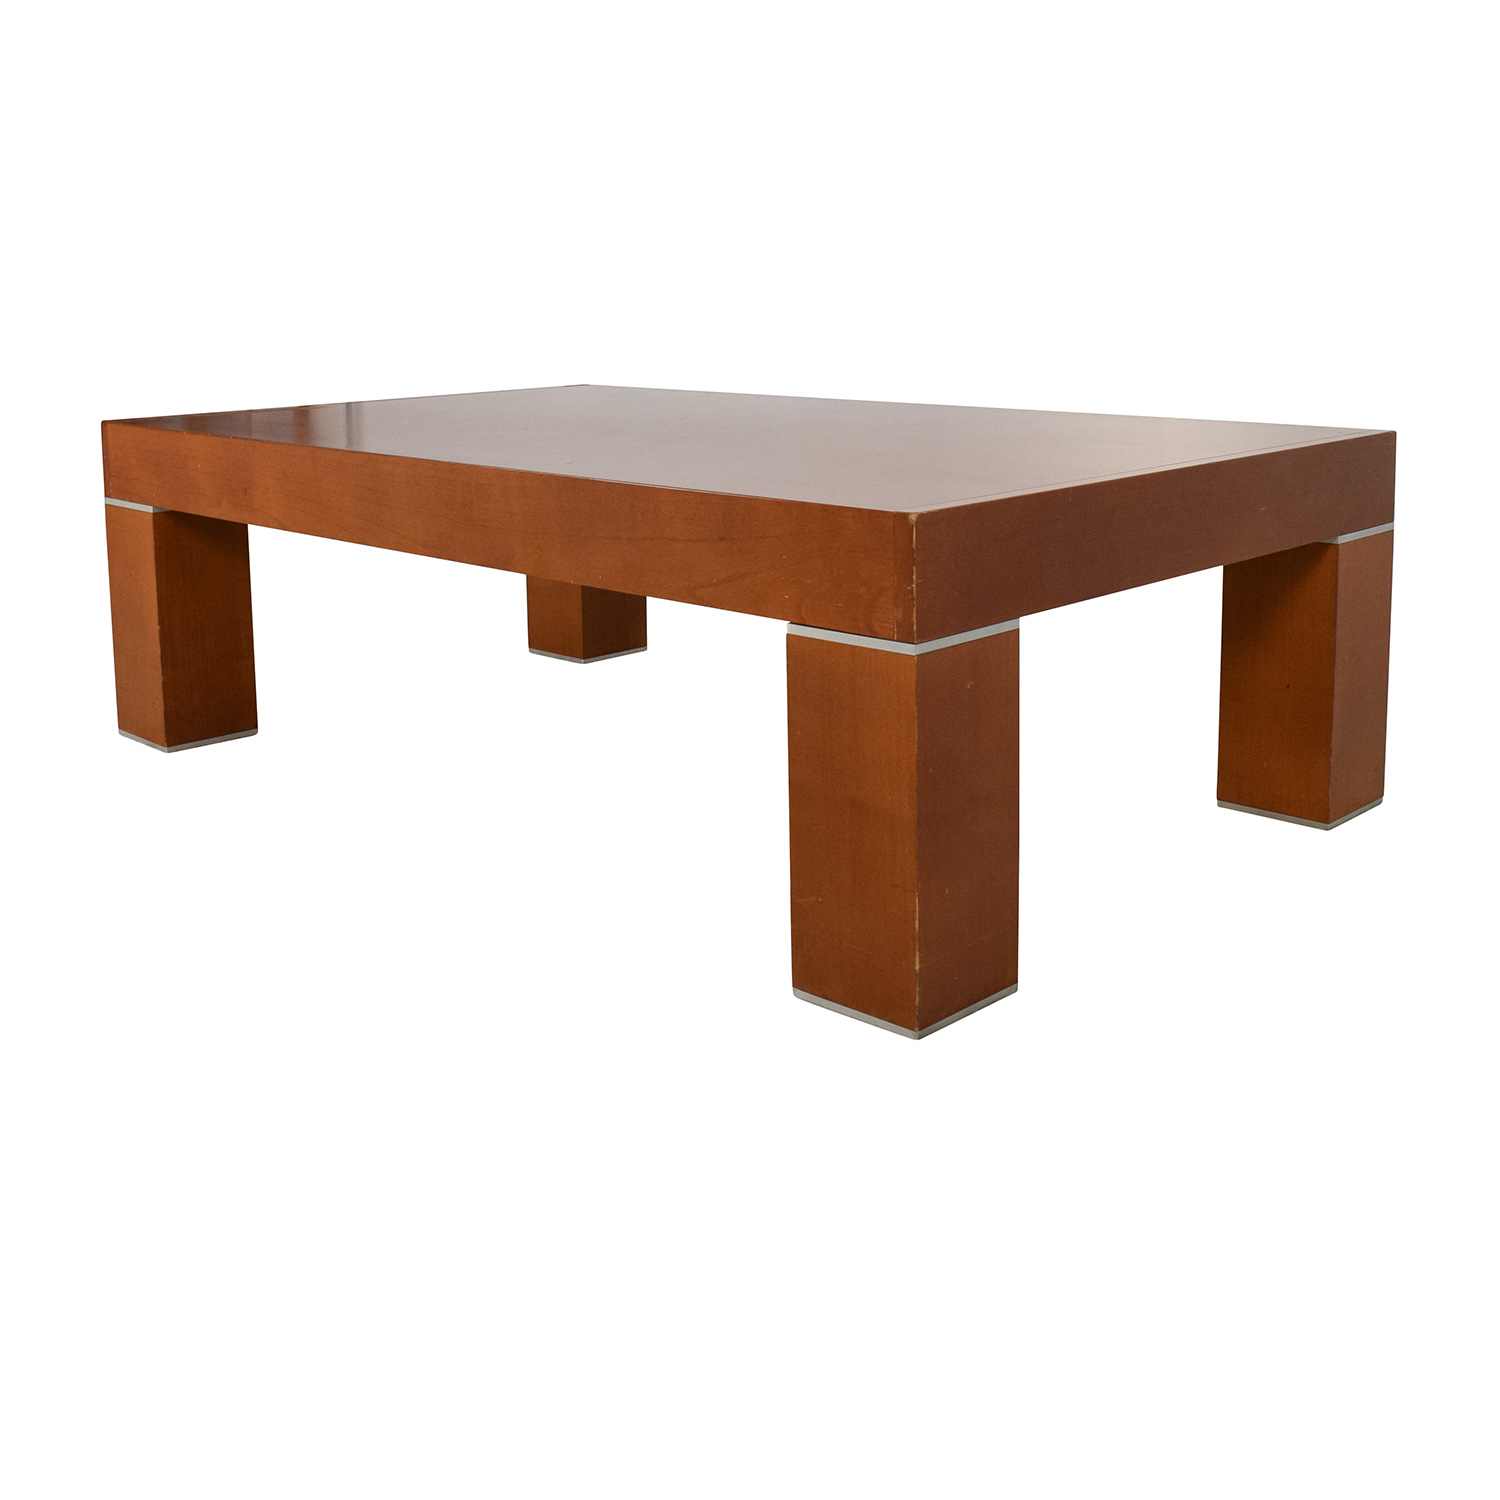 86 off roche bobois paris roche bobois paris wood - Table ovale marbre roche bobois ...